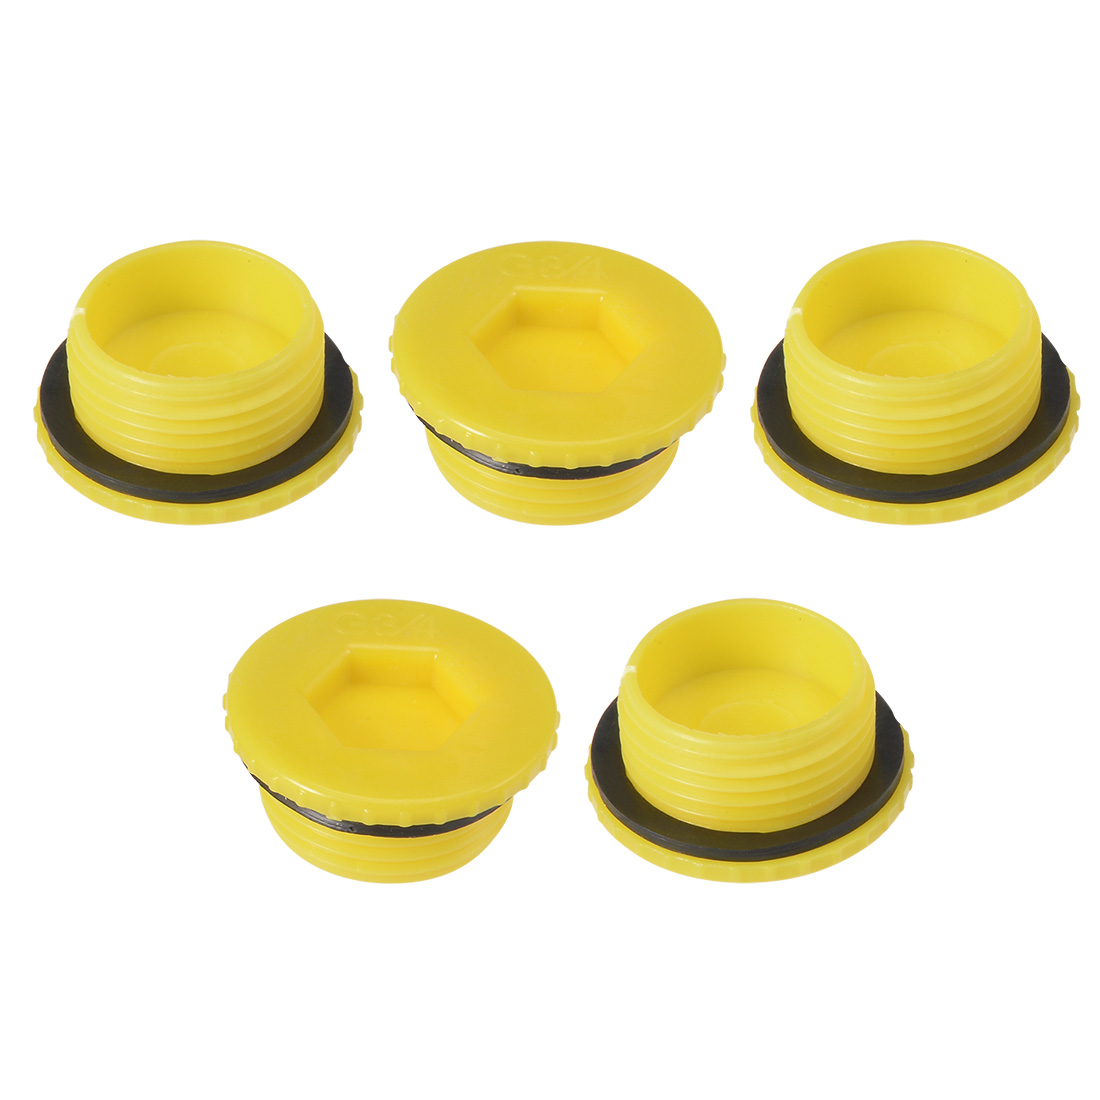 MLD-G3/4 G3/4 Hex Socket Design PE Plastic Male Threaded Sealing Cap Yellow 5pcs